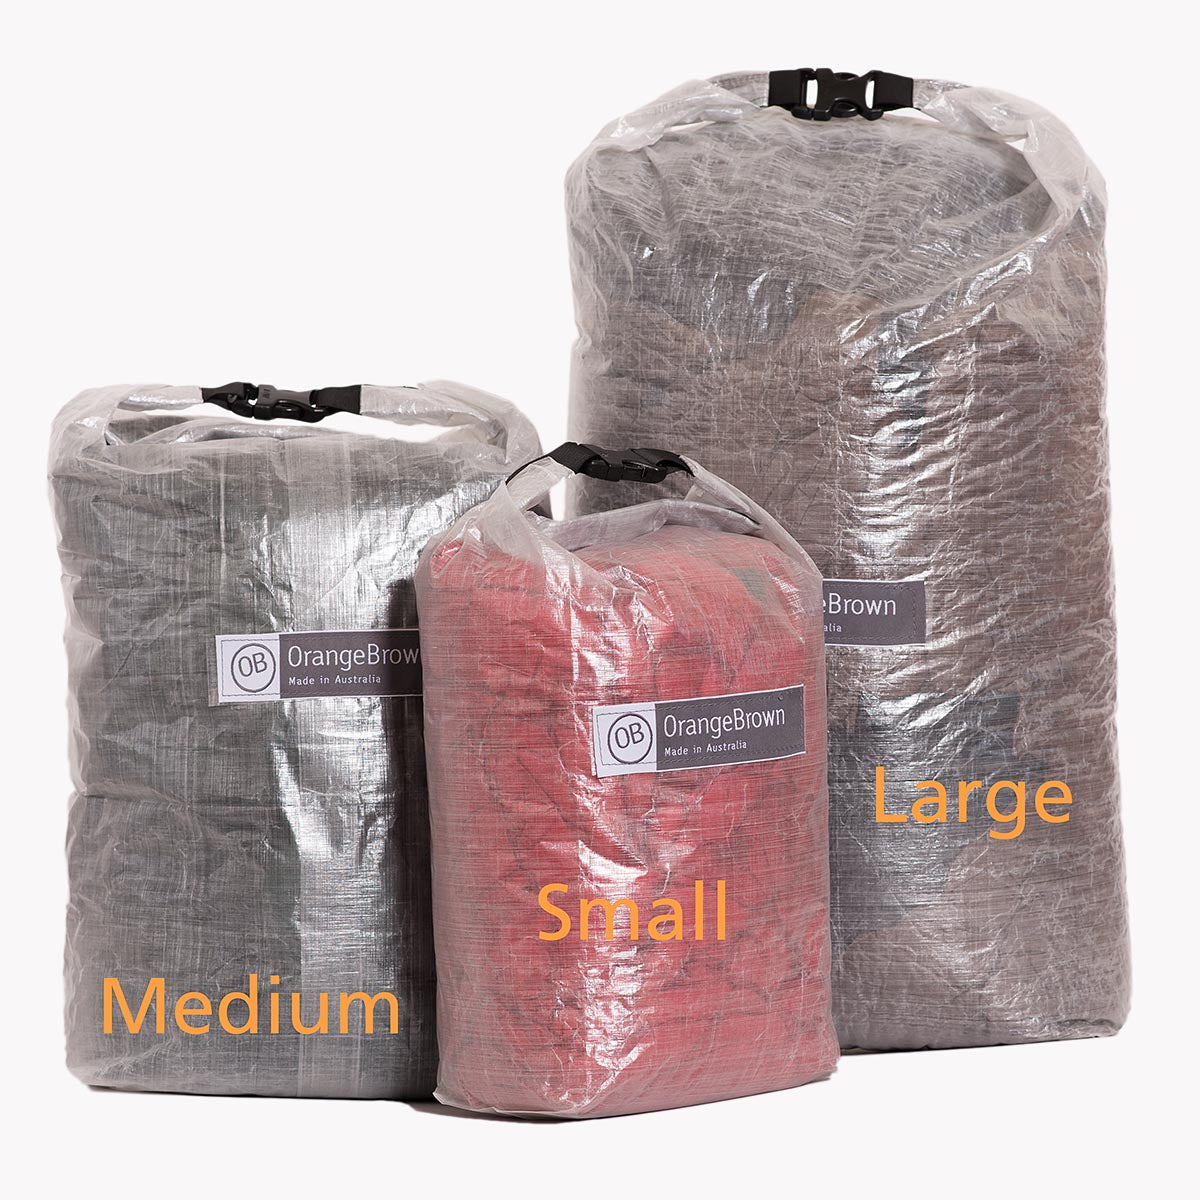 Dry Bag - Rolltop Storage Bag made from Dyneema® Composite Fabric (aka Cuben Fiber) - Size Small, Medium and Large. Handmade in Australia by OrangeBrown